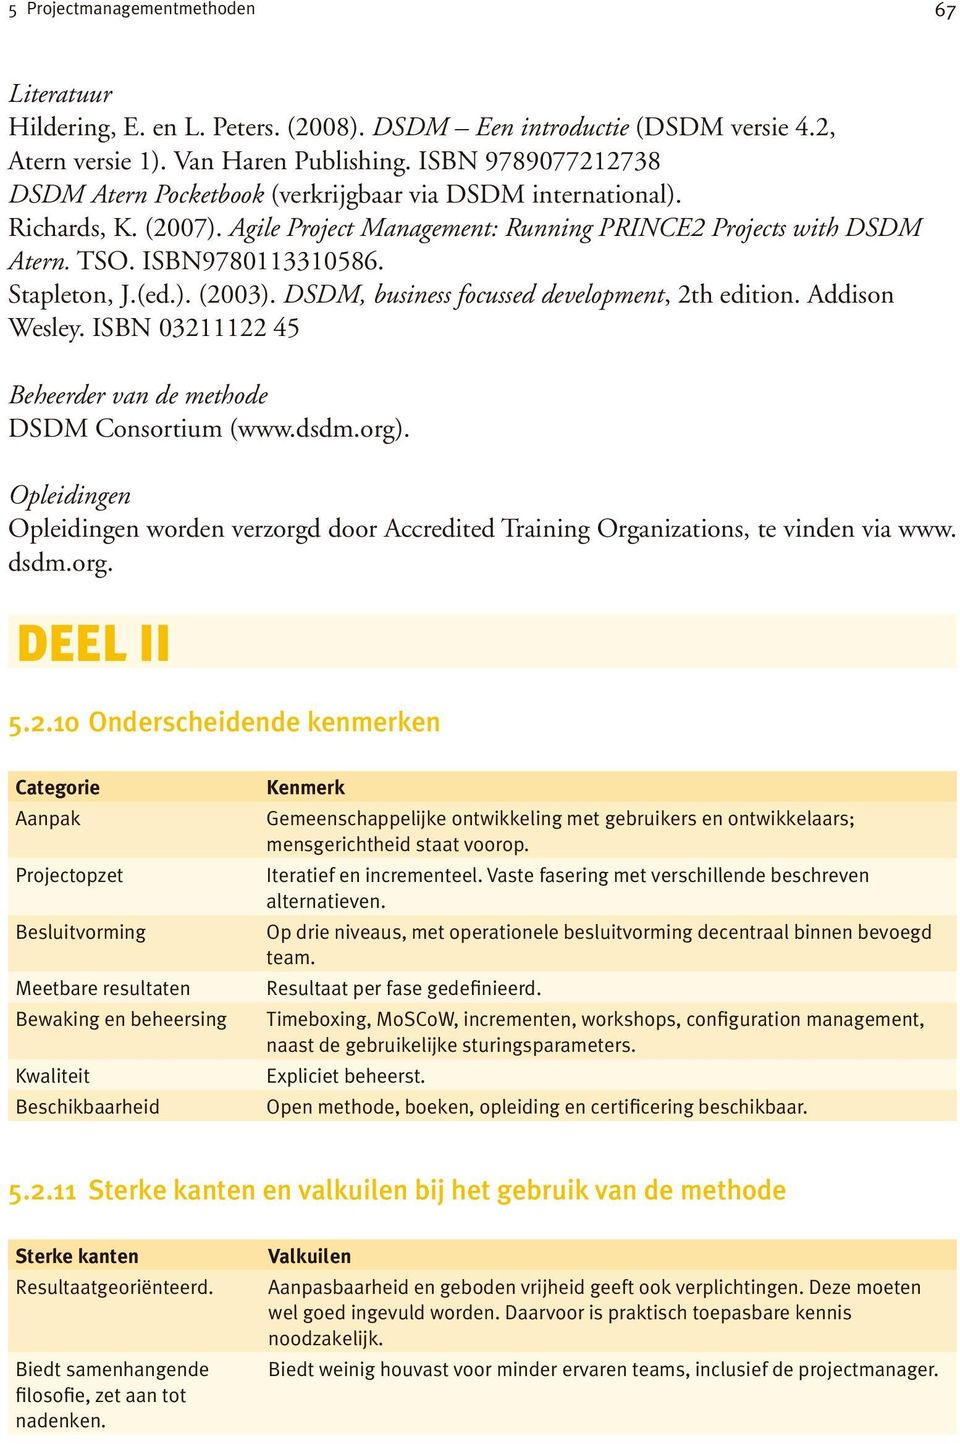 Stapleton, J.(ed.). (2003). DSDM, business focussed development, 2th edition. Addison Wesley. ISBN 03211122 45 Beheerder van de methode DSDM Consortium (www.dsdm.org).